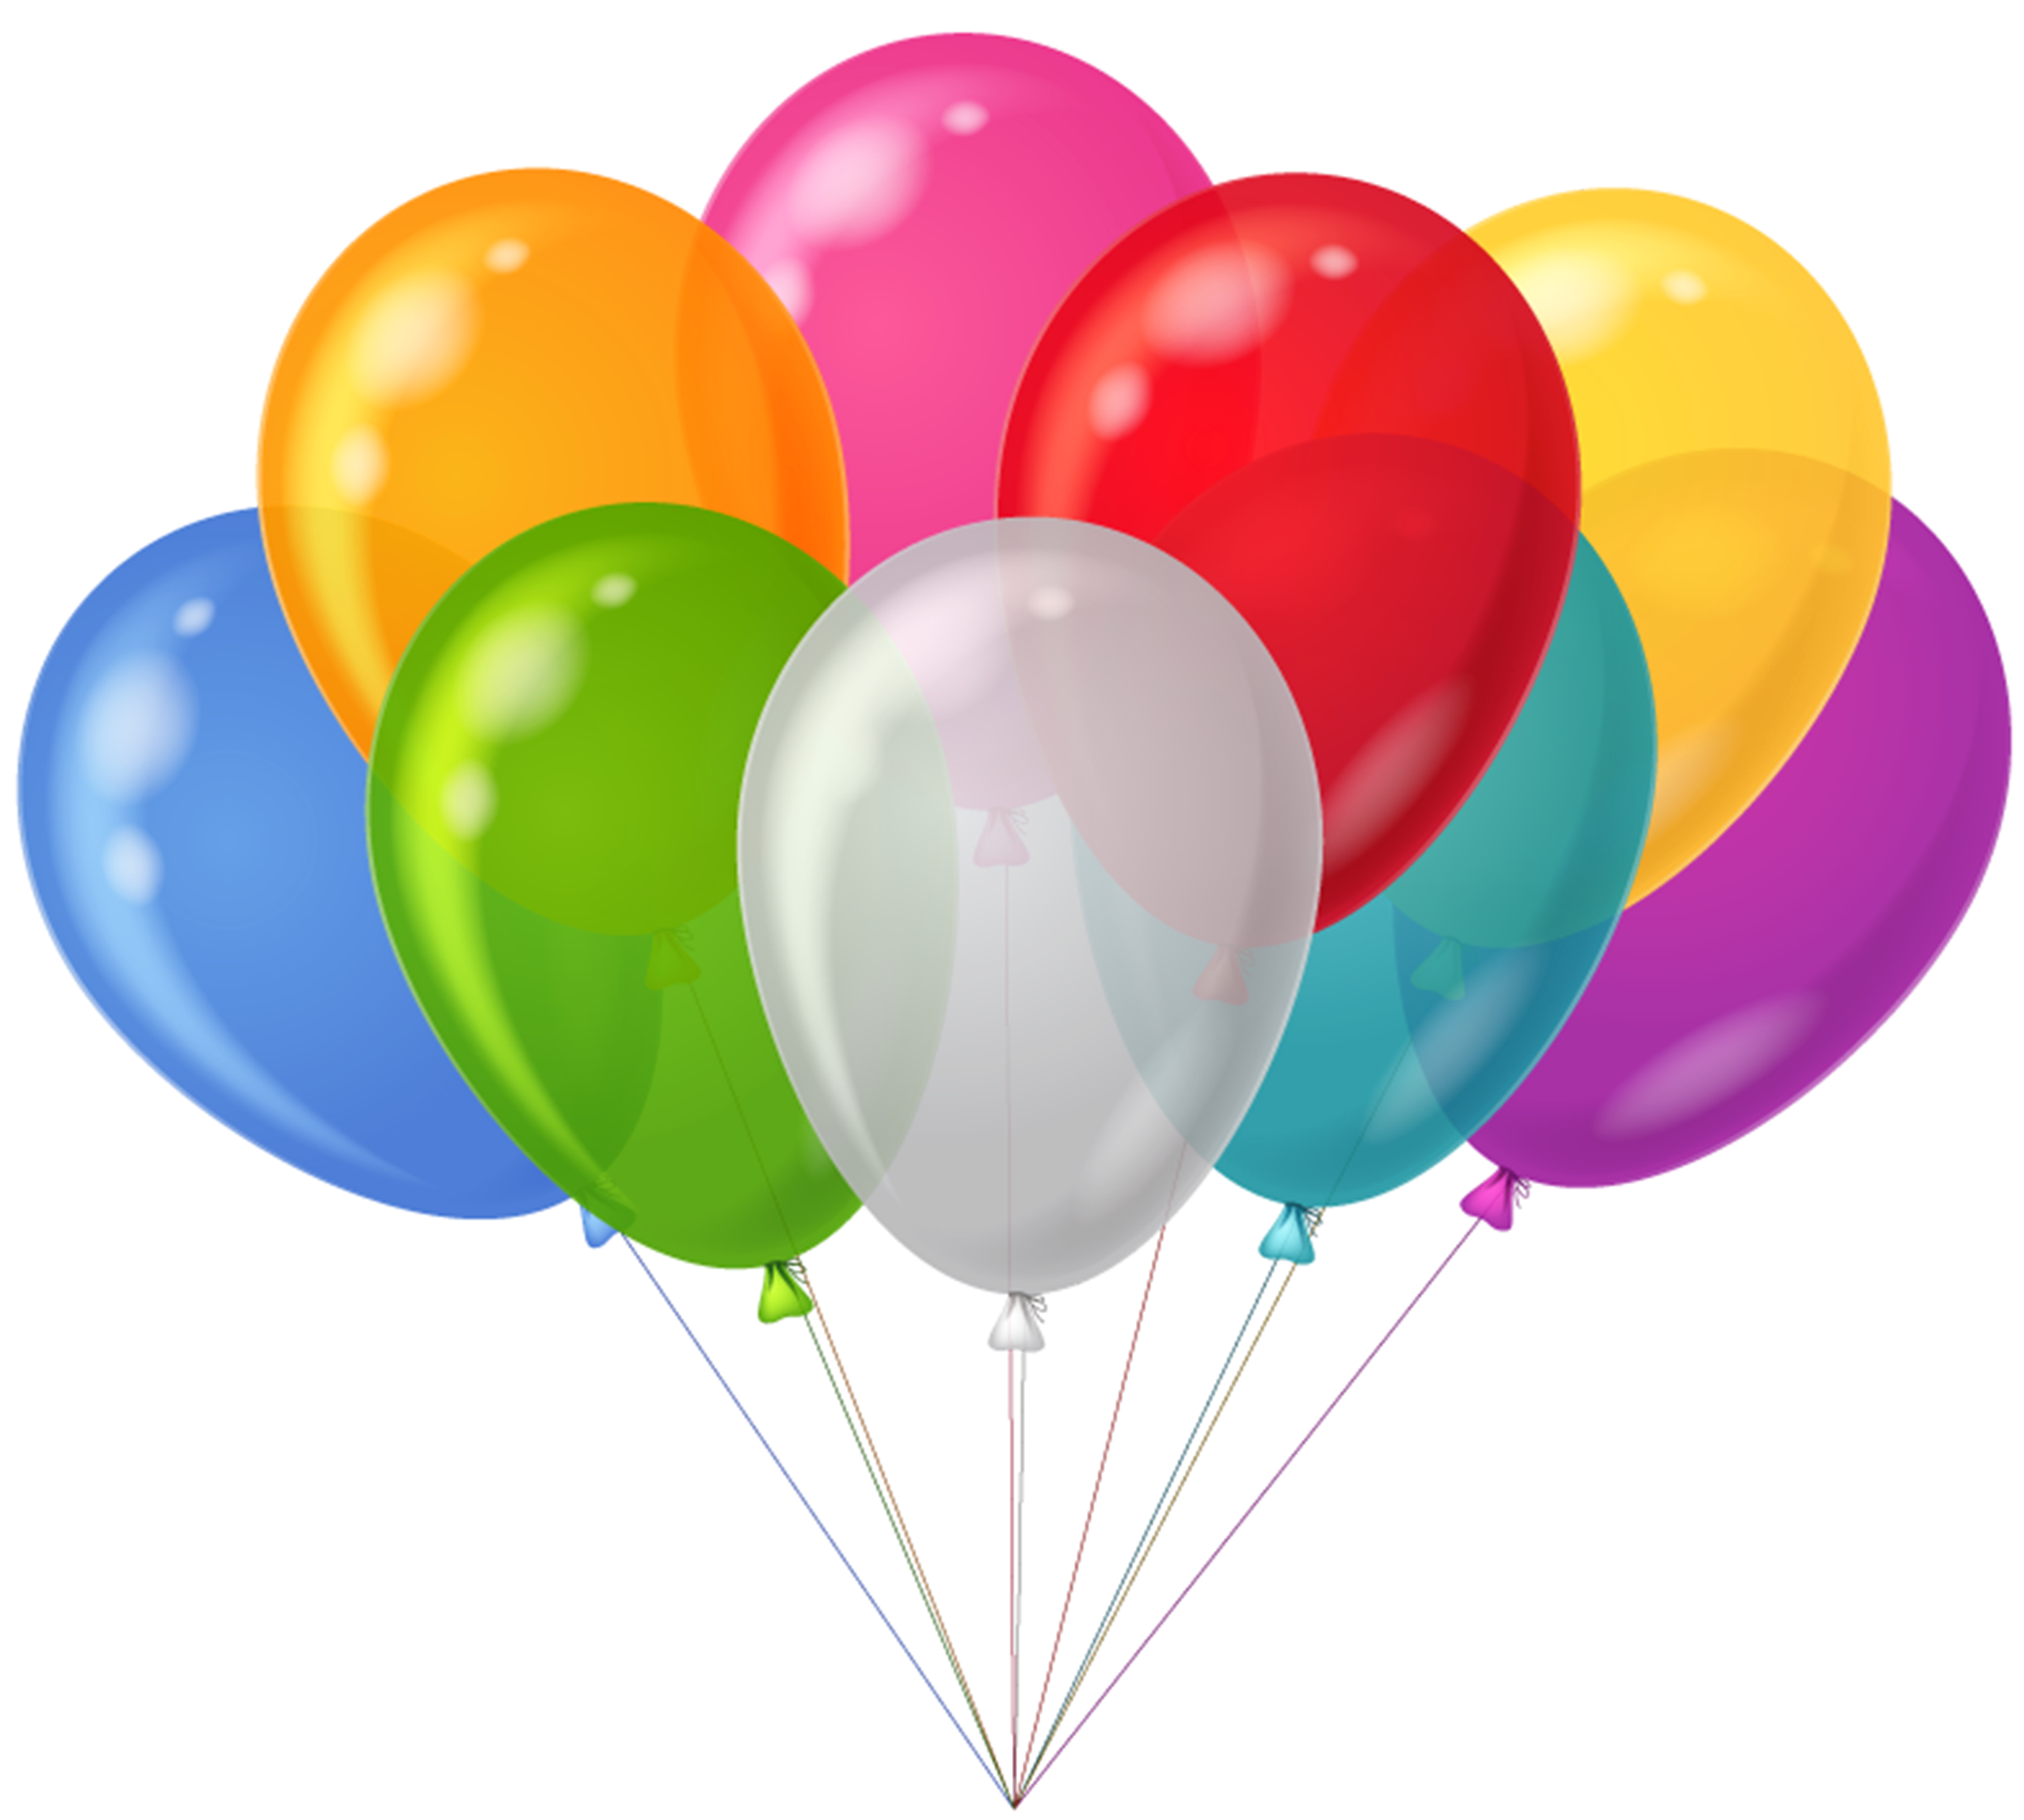 3250x2922 Free Birthday Balloon Clip Art Clipart Images 5